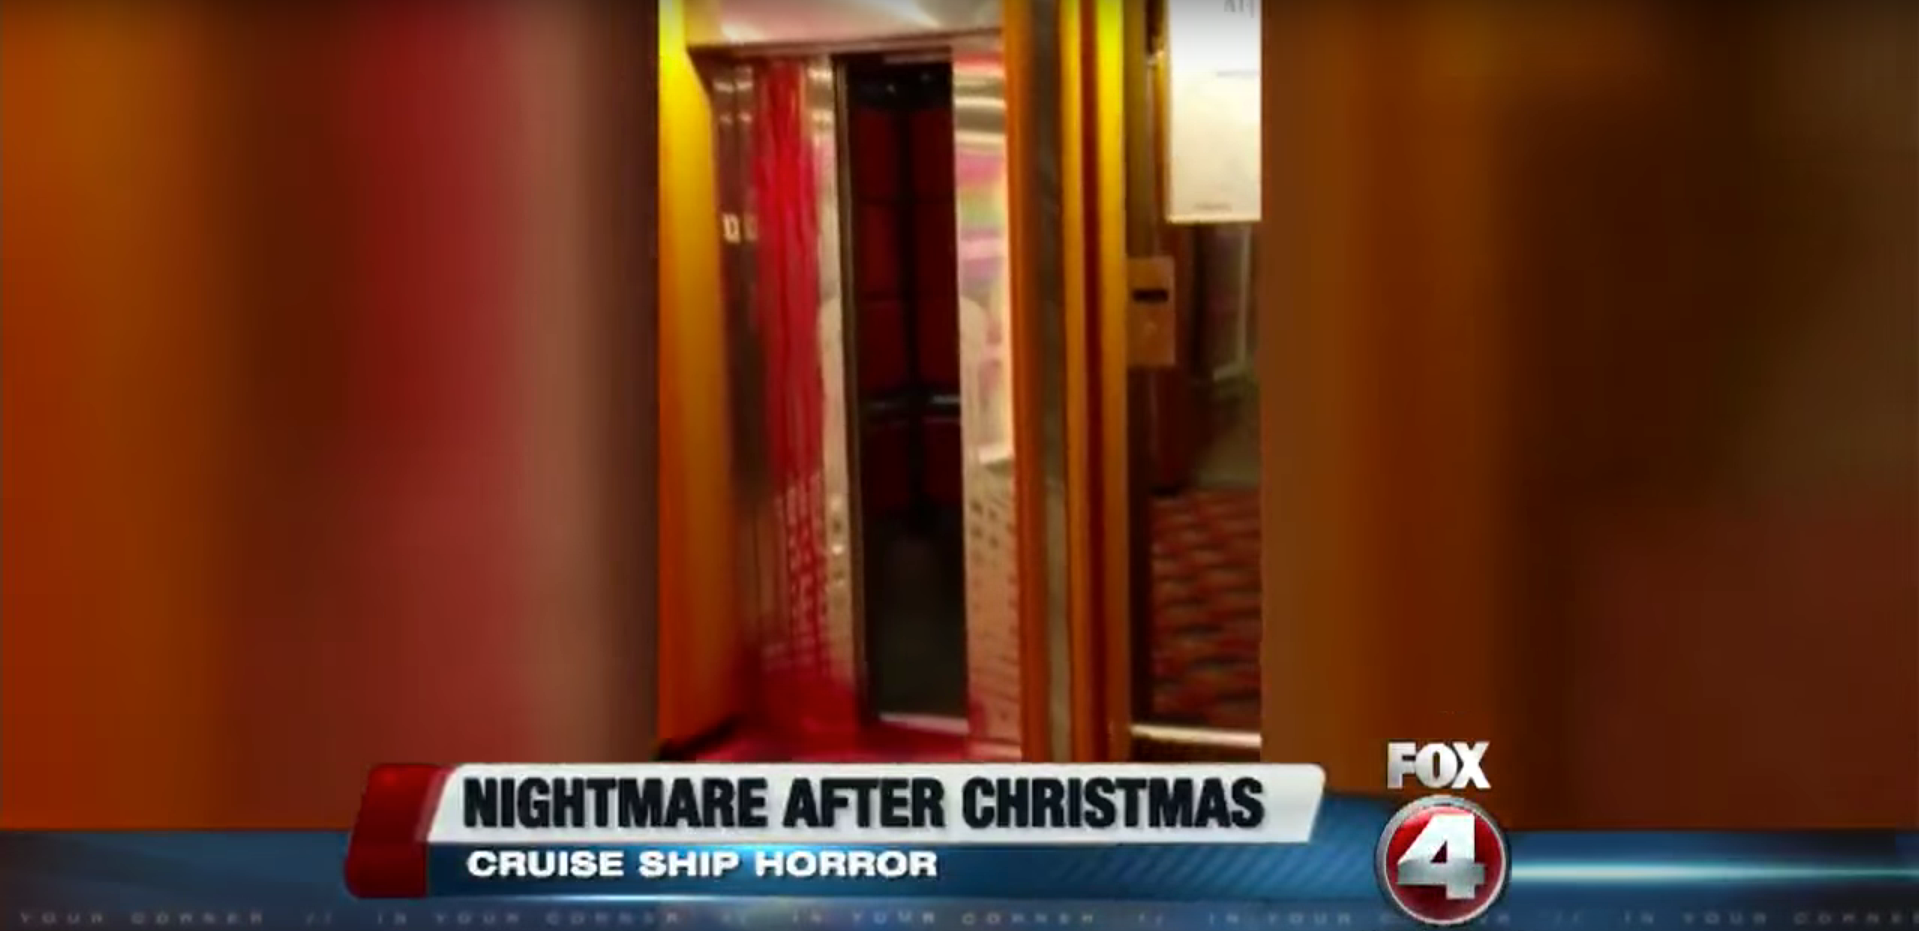 Nightmare After Christmas: Cruise Ship Horror as couple shows video of 'bloody mystery' on Carnival Cruise ship (VIDEO)